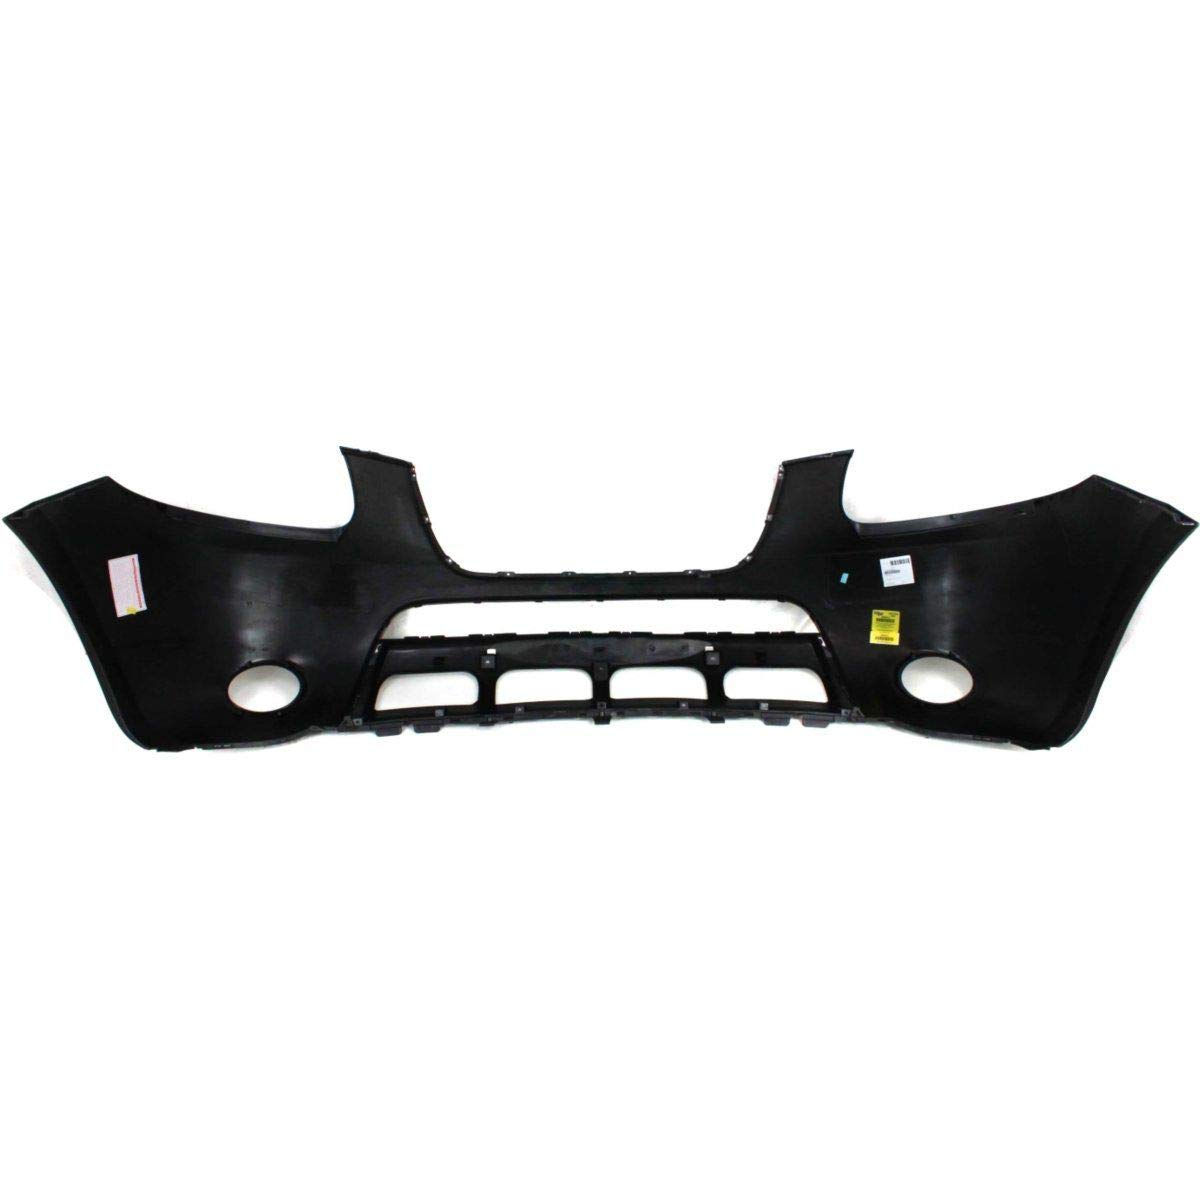 Front Lower Bumper Cover For 2007-2009 Hyundai Santa Fe Primed